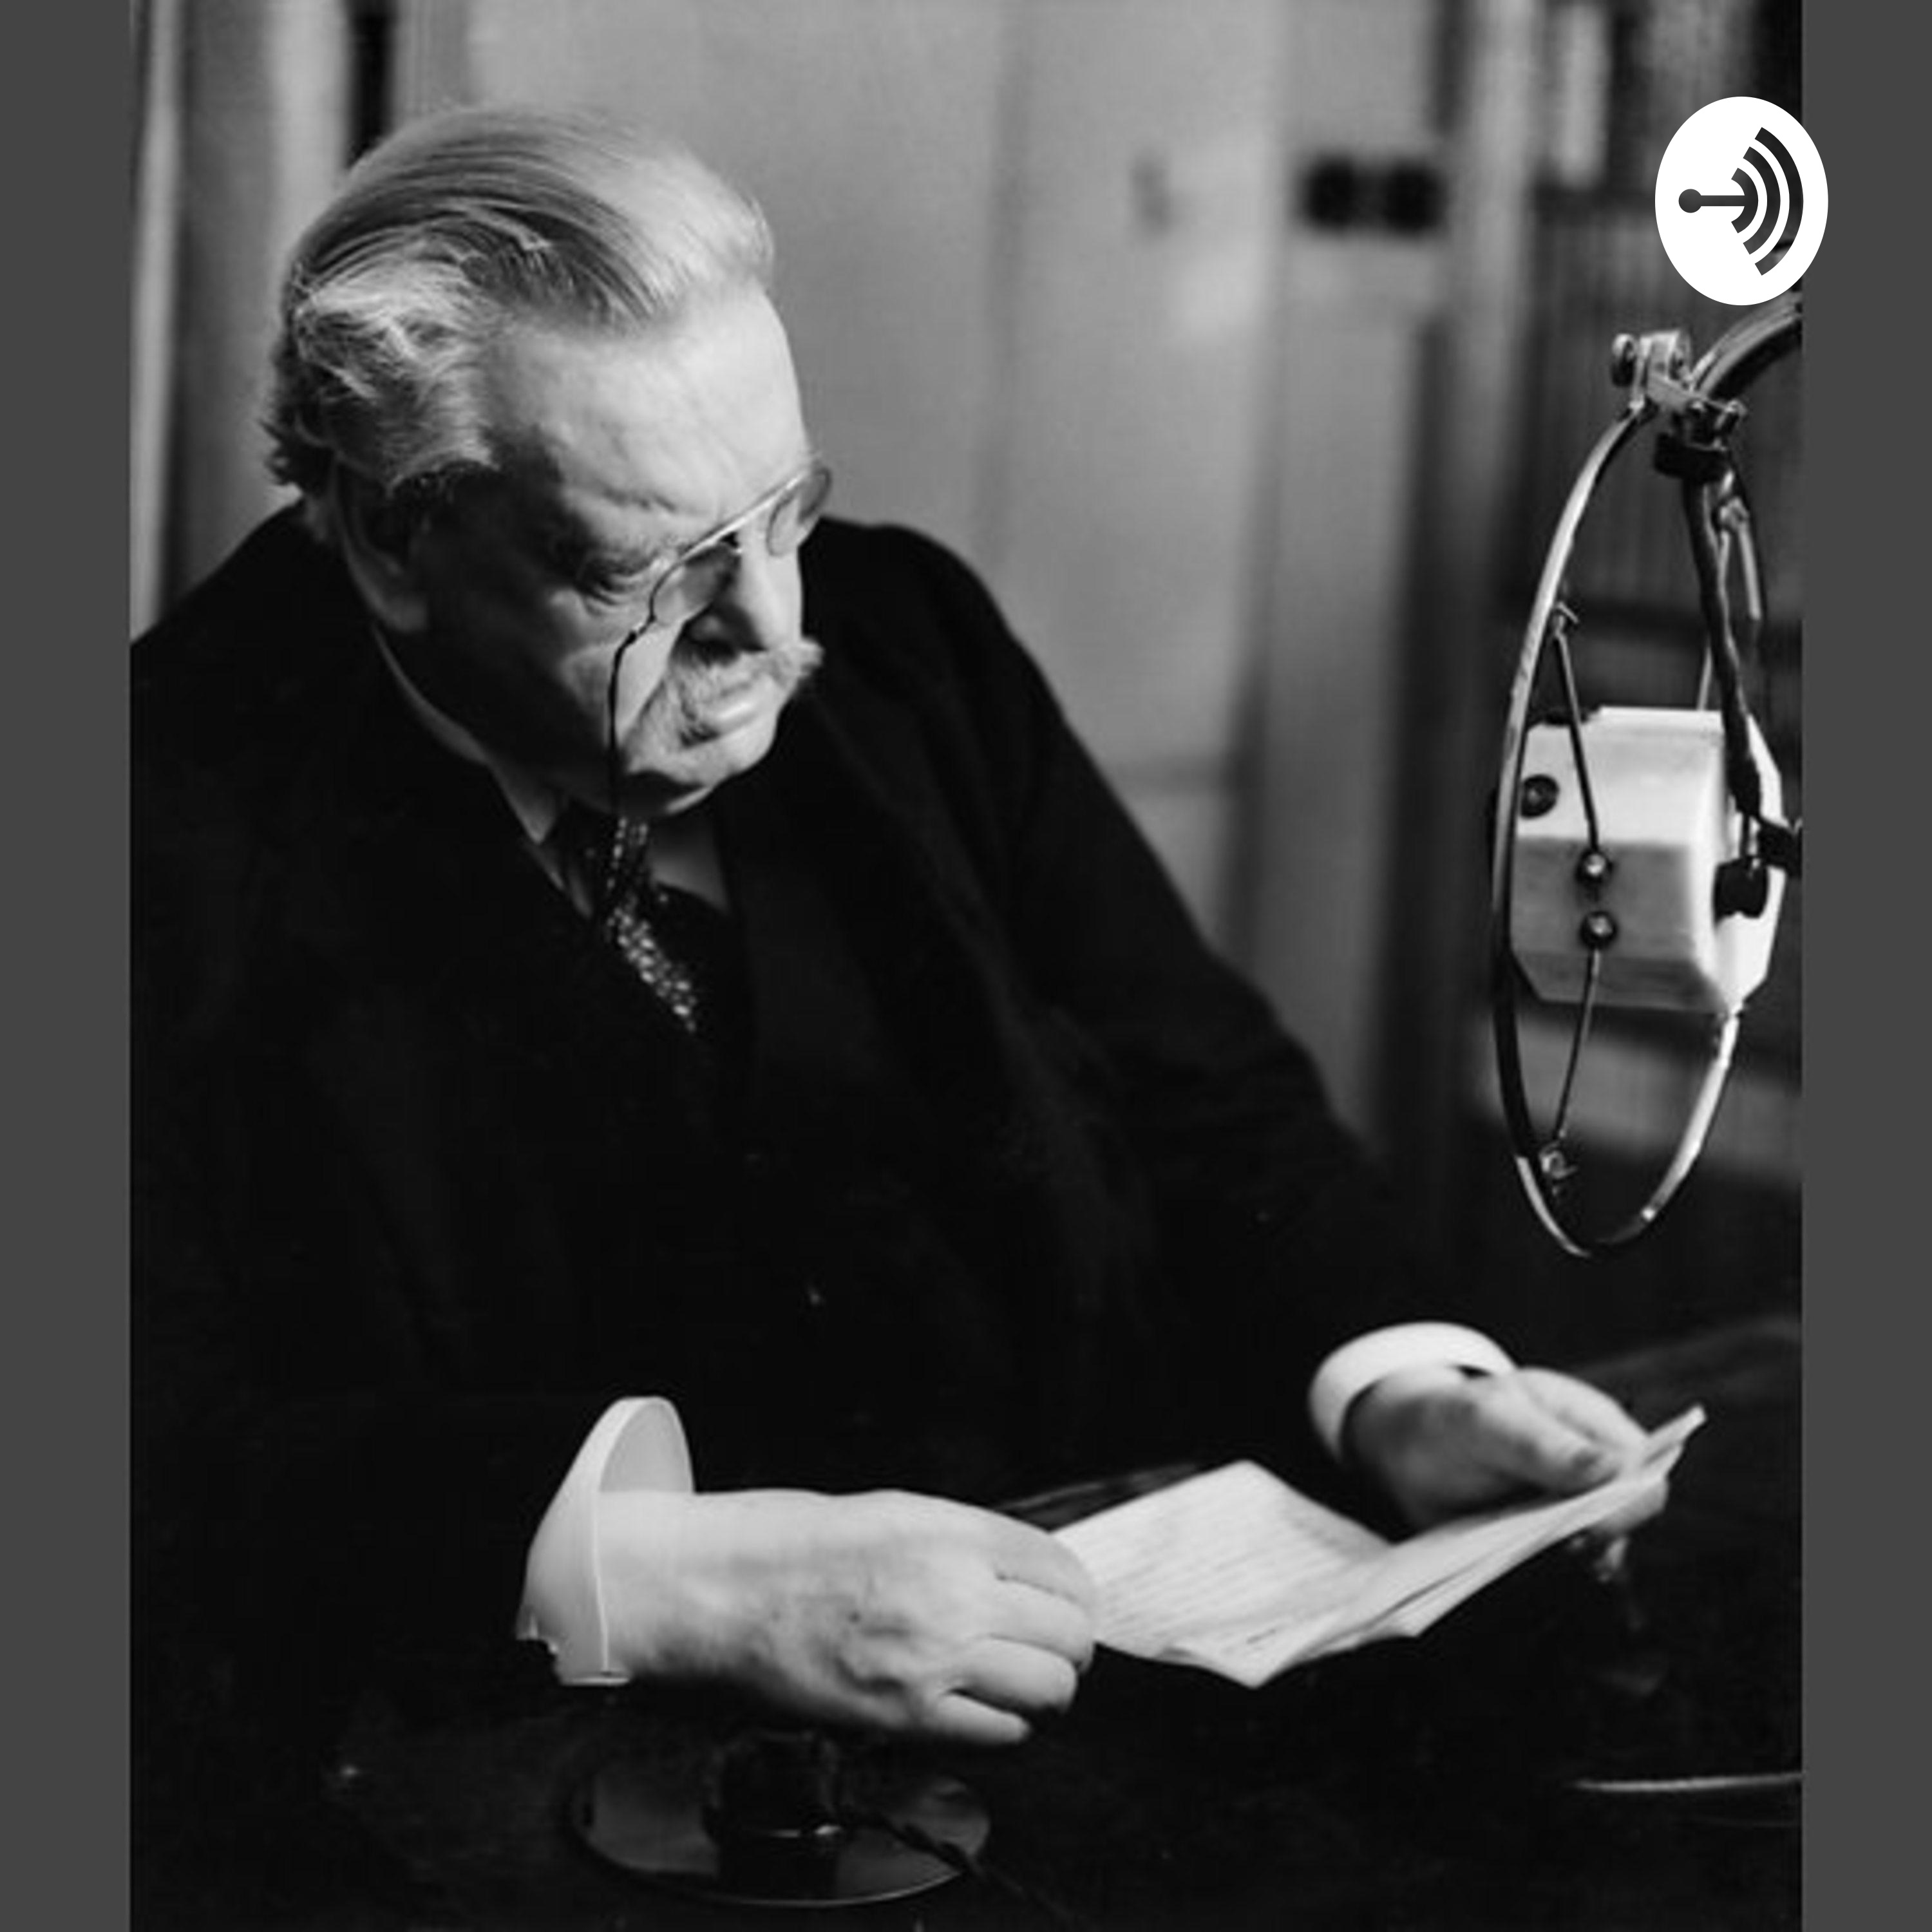 Benny and Chesterton Morning Show Podcast - Jack with the Quiz Kids - Lepanto - Sister Elizabeth Kenny - Chesterton Everlasting Man